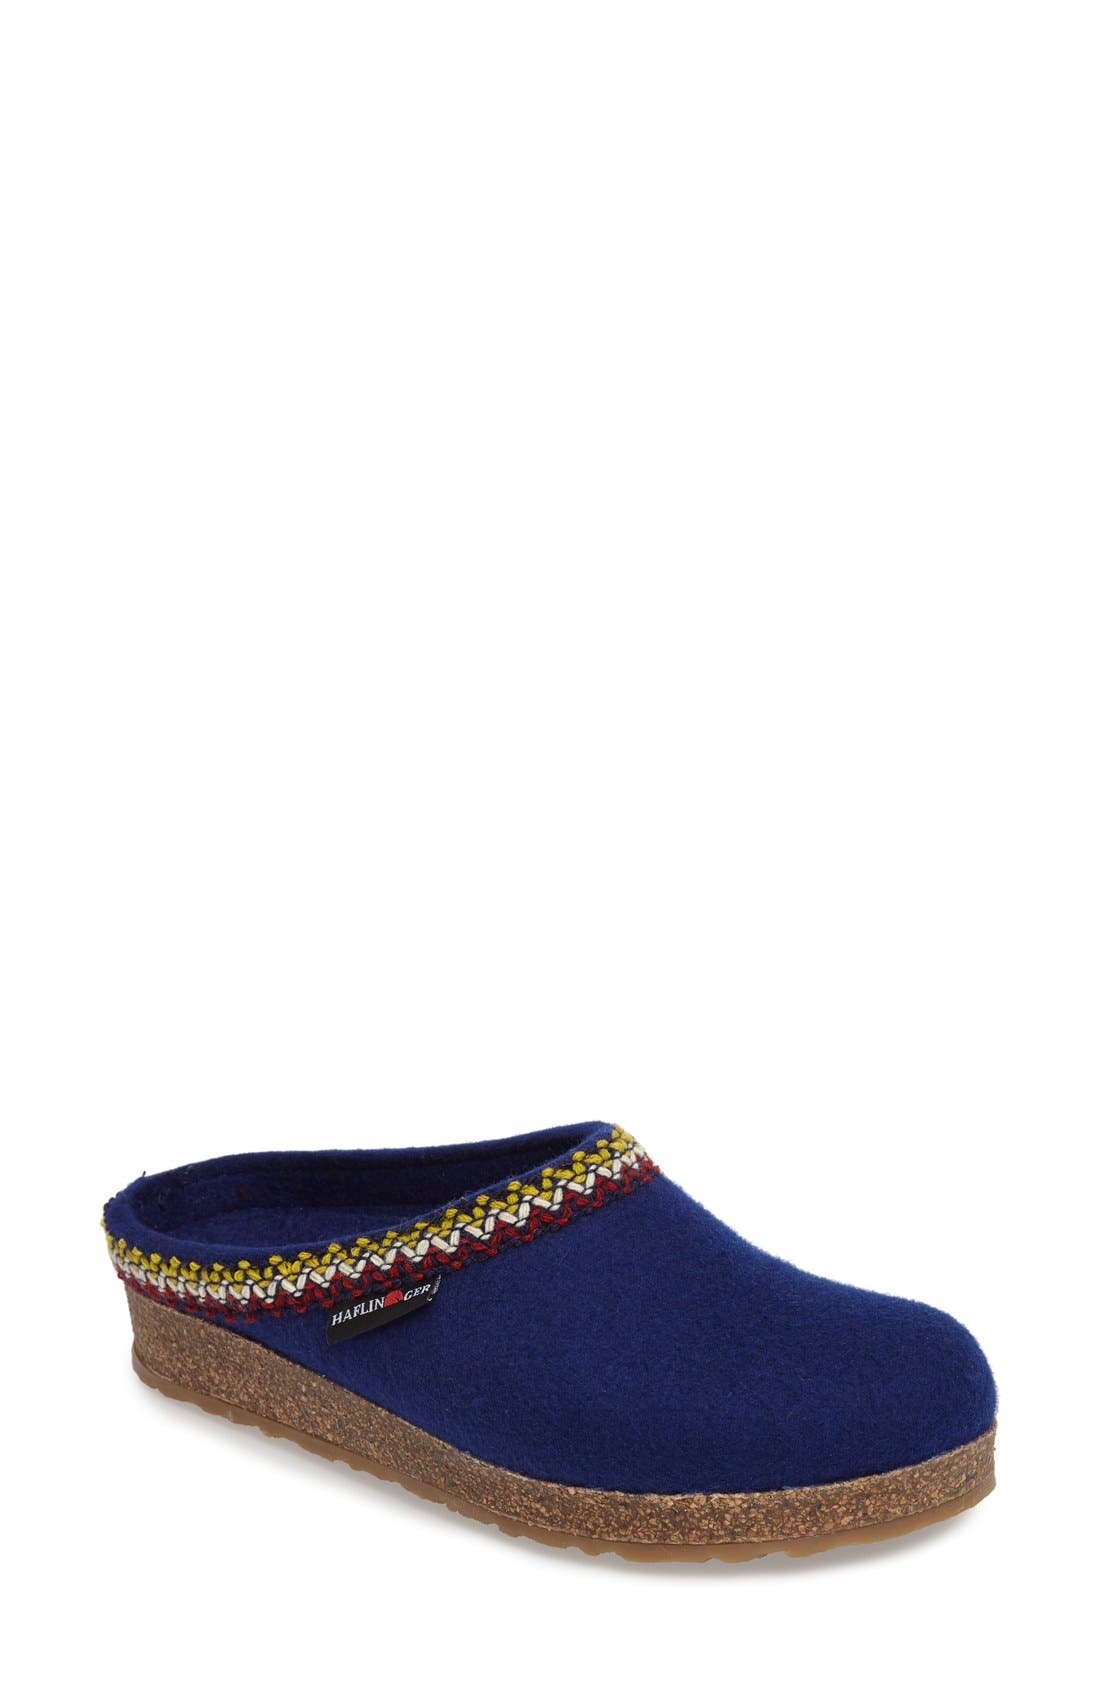 Zigzag Slipper,                             Main thumbnail 3, color,